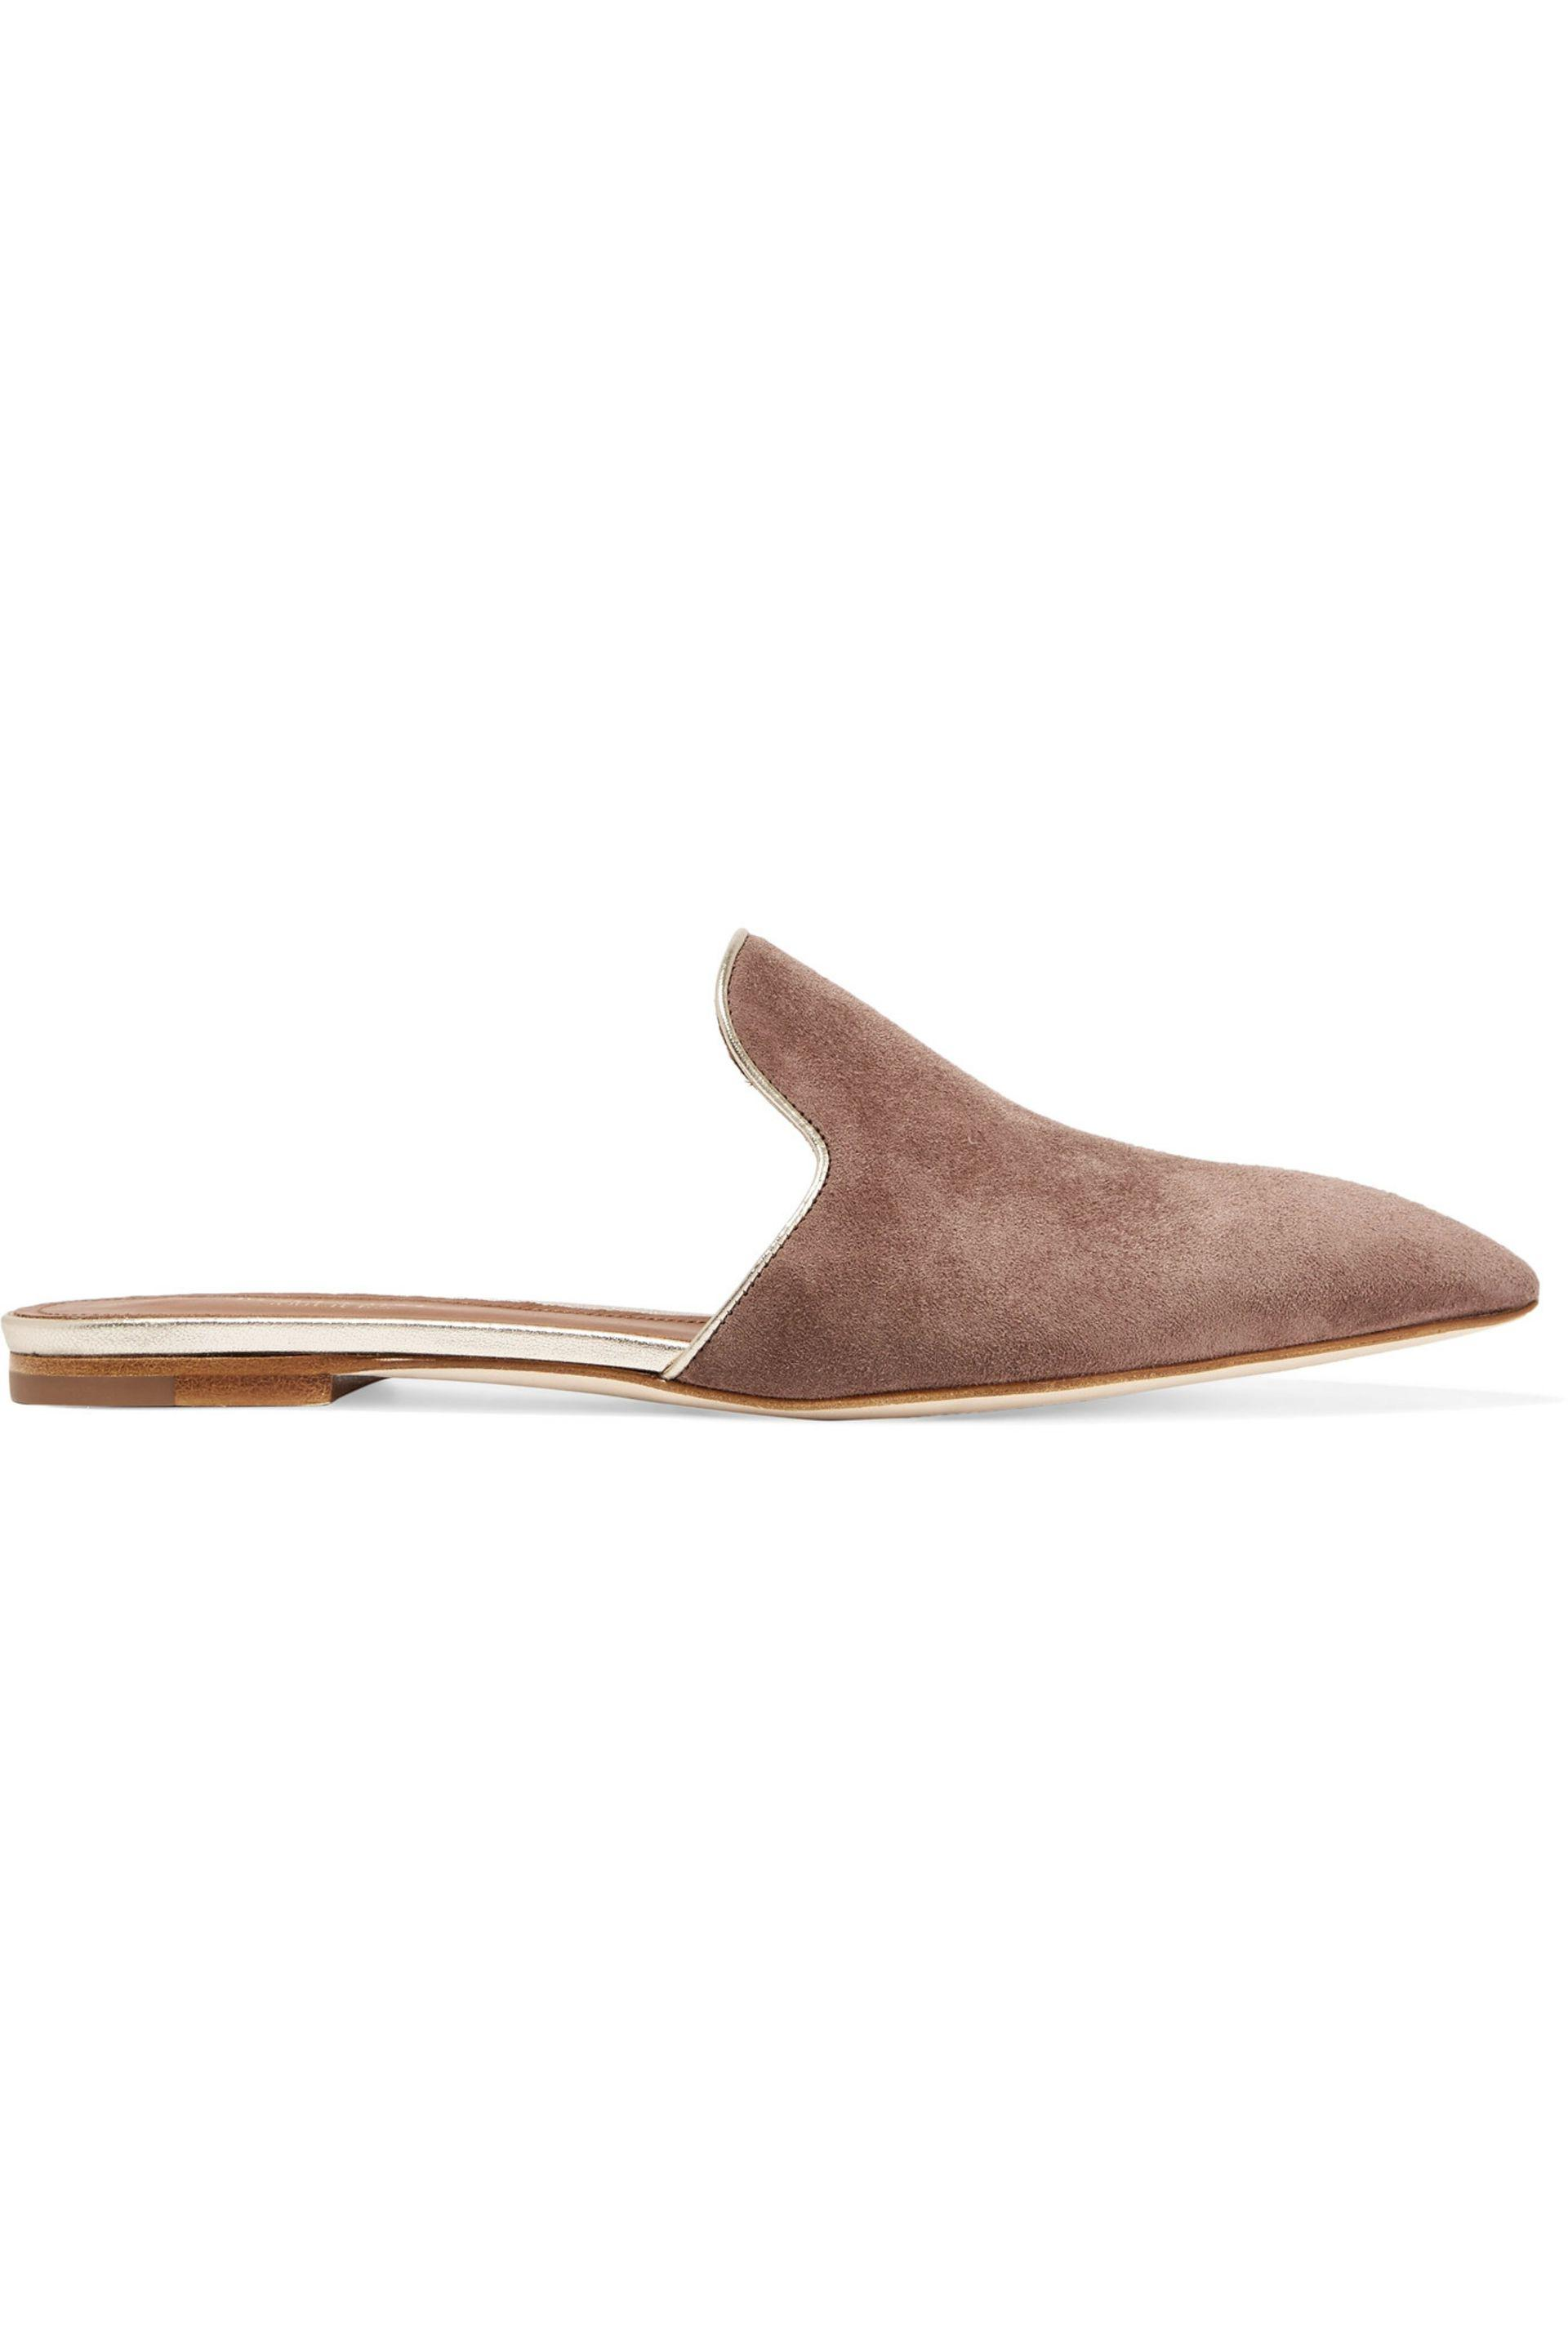 MALONE SOULIERS Marianne Suede Slippers bJy5FzfIp